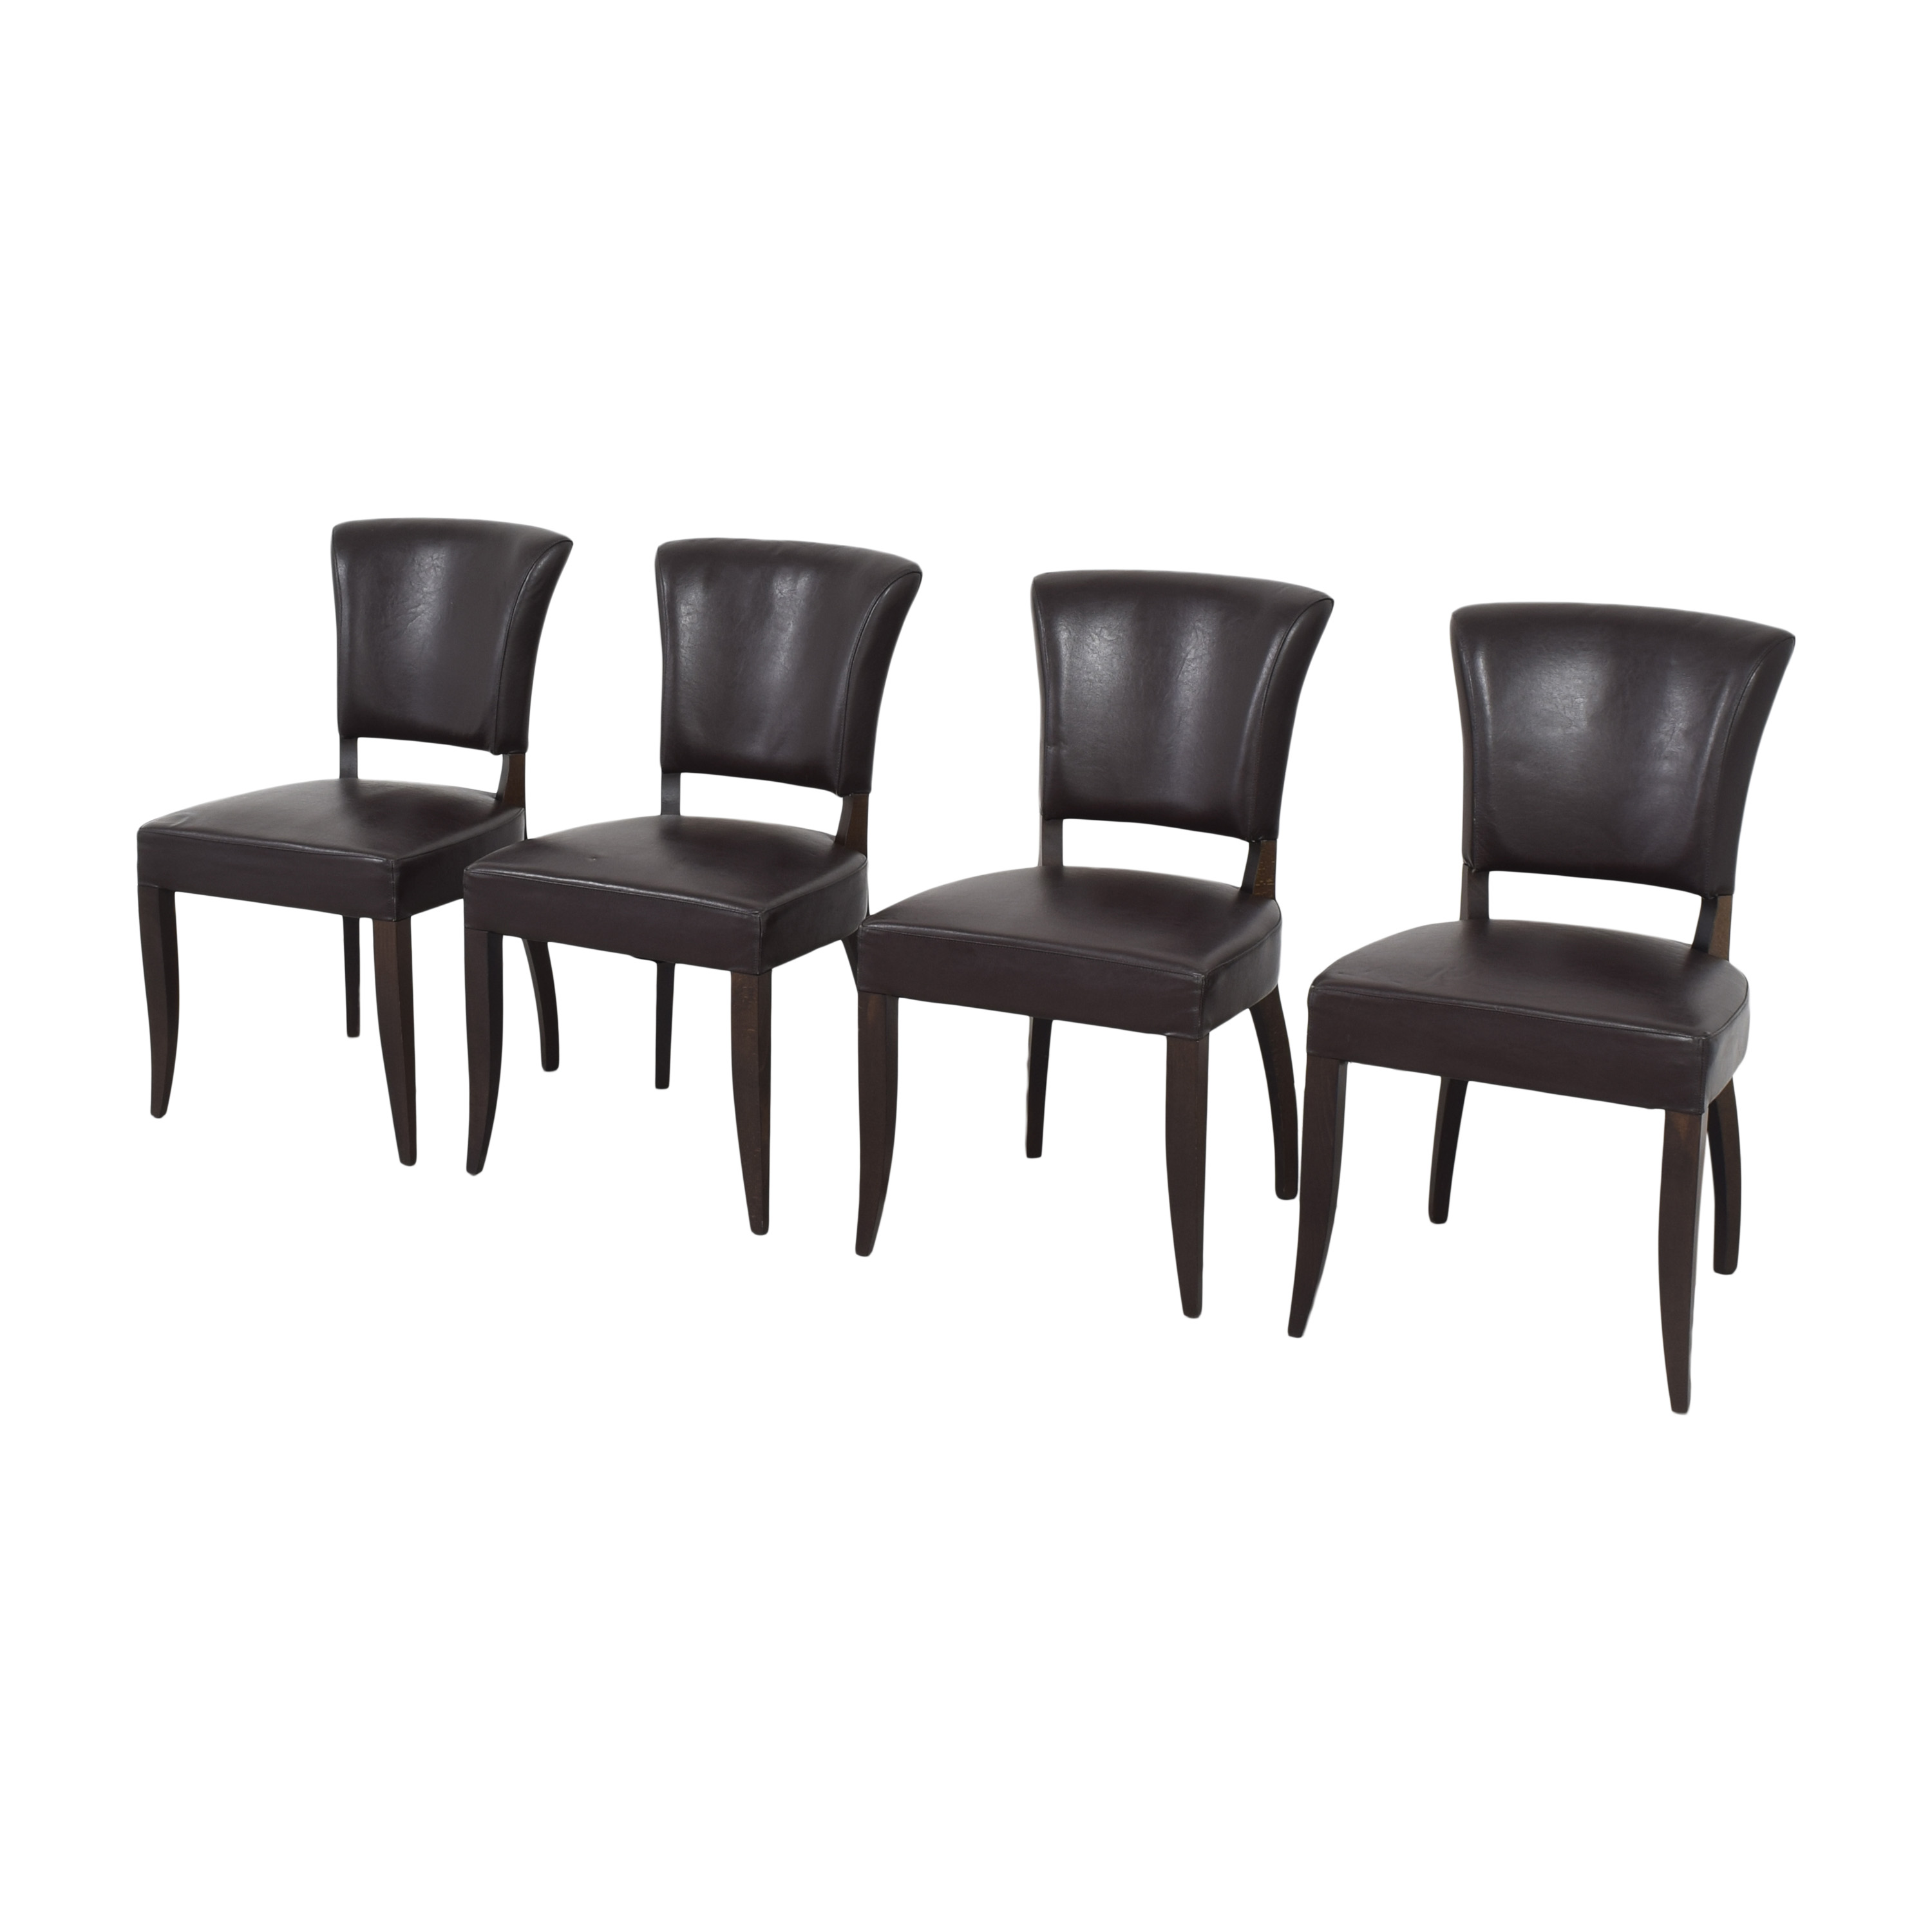 Crate & Barrel Crate & Barrel Side Dining Chairs for sale